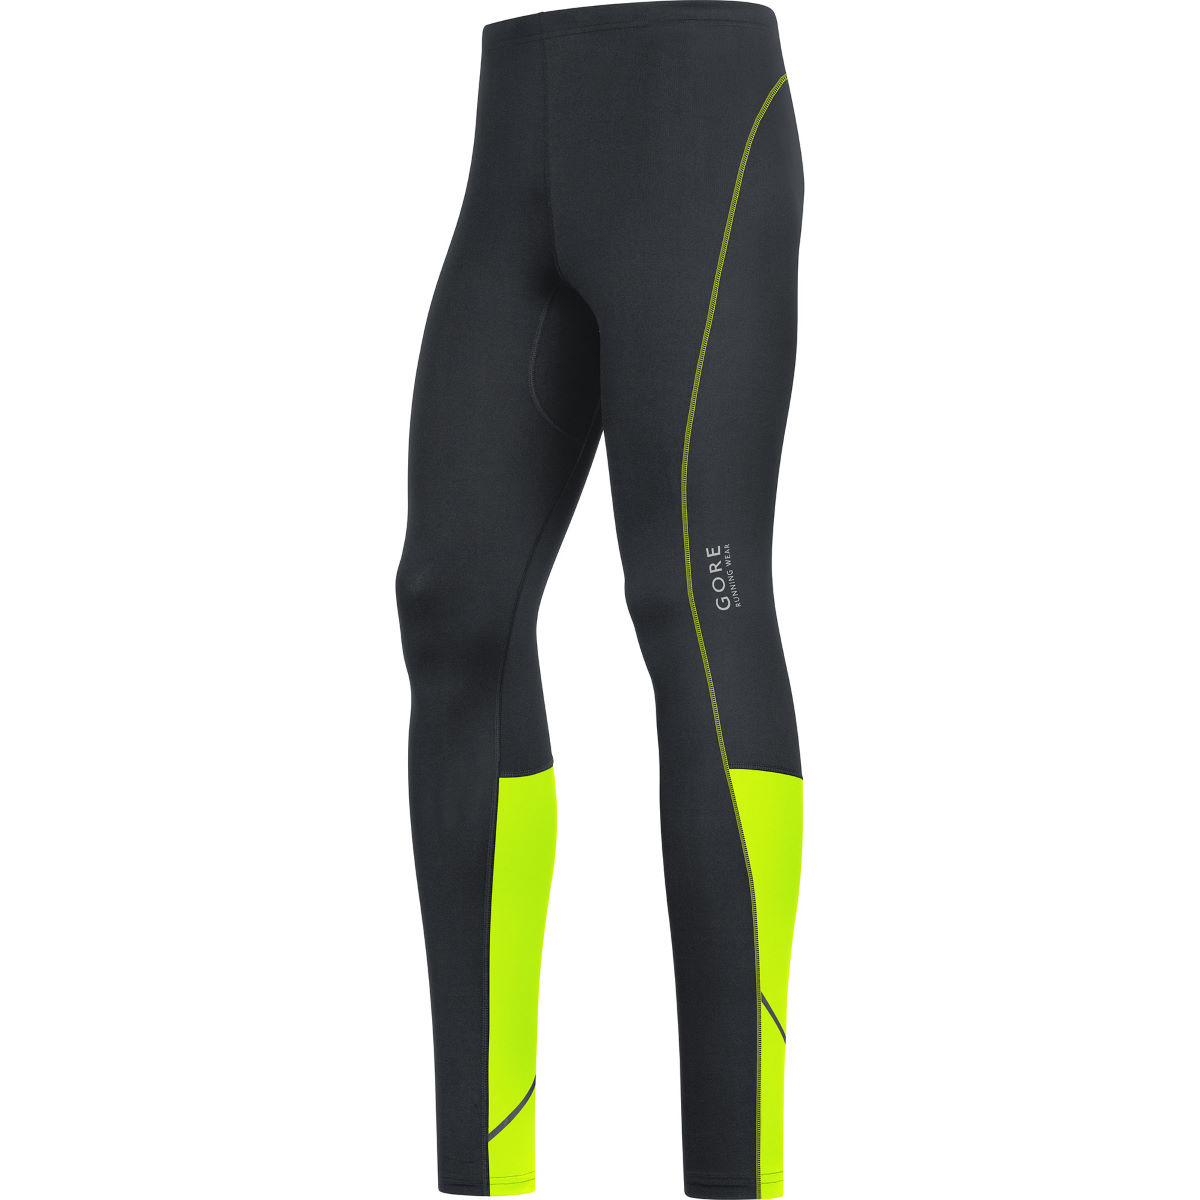 Collant Gore Running Wear Essential - XXL black/neon yellow